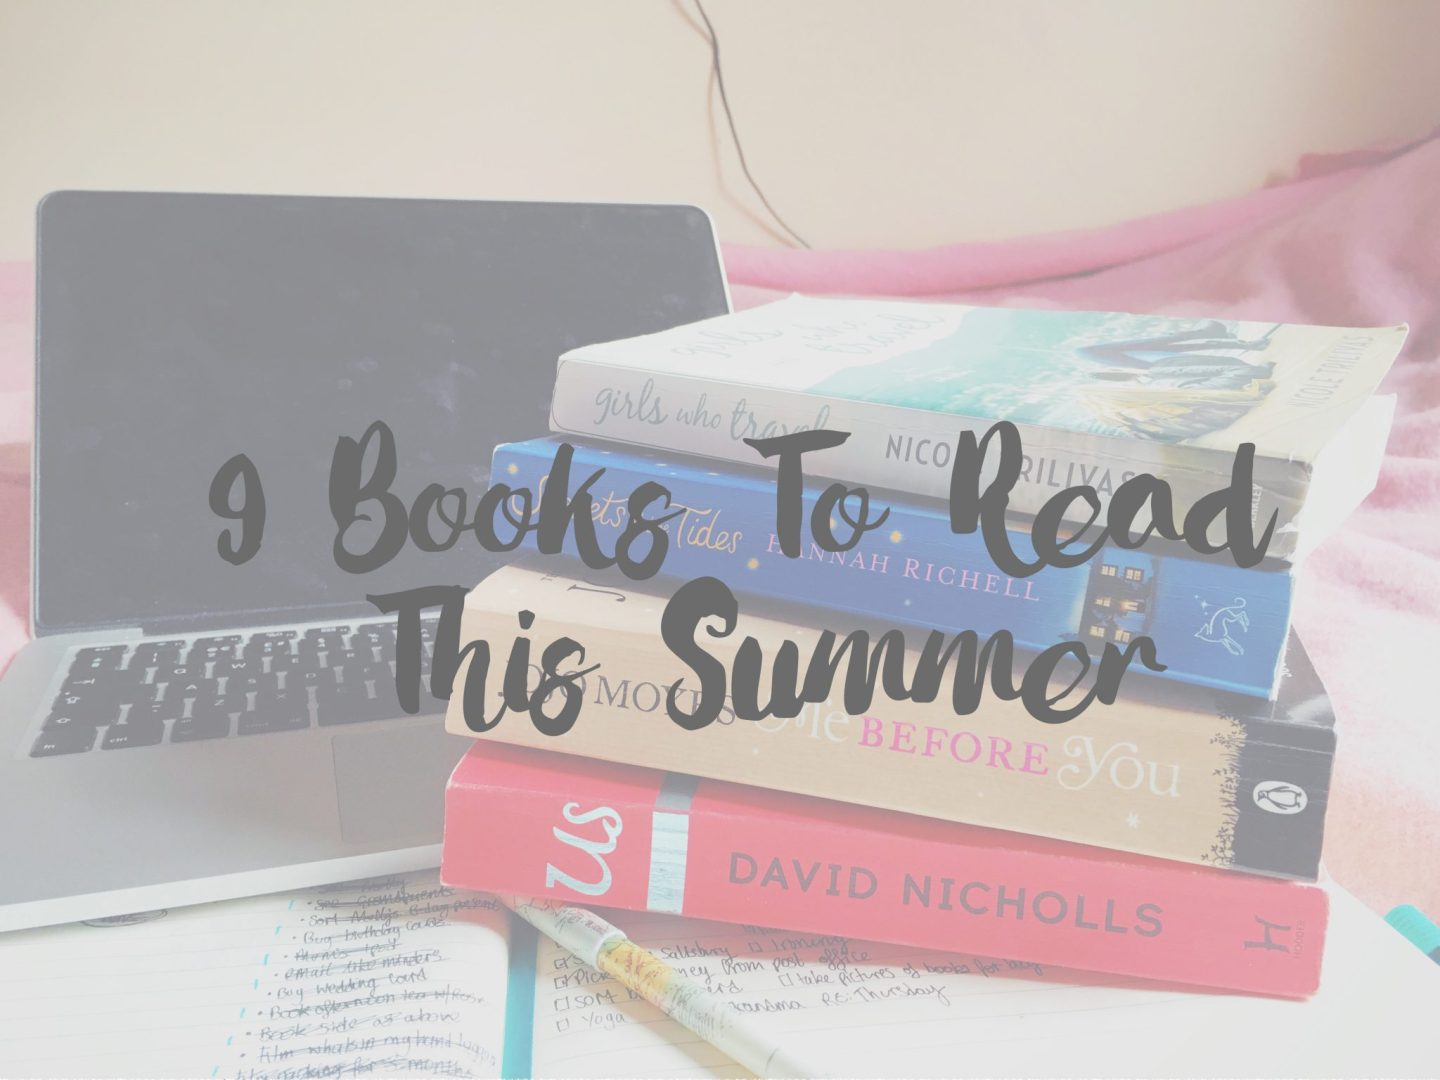 9 Books to Read on your Summer Holiday